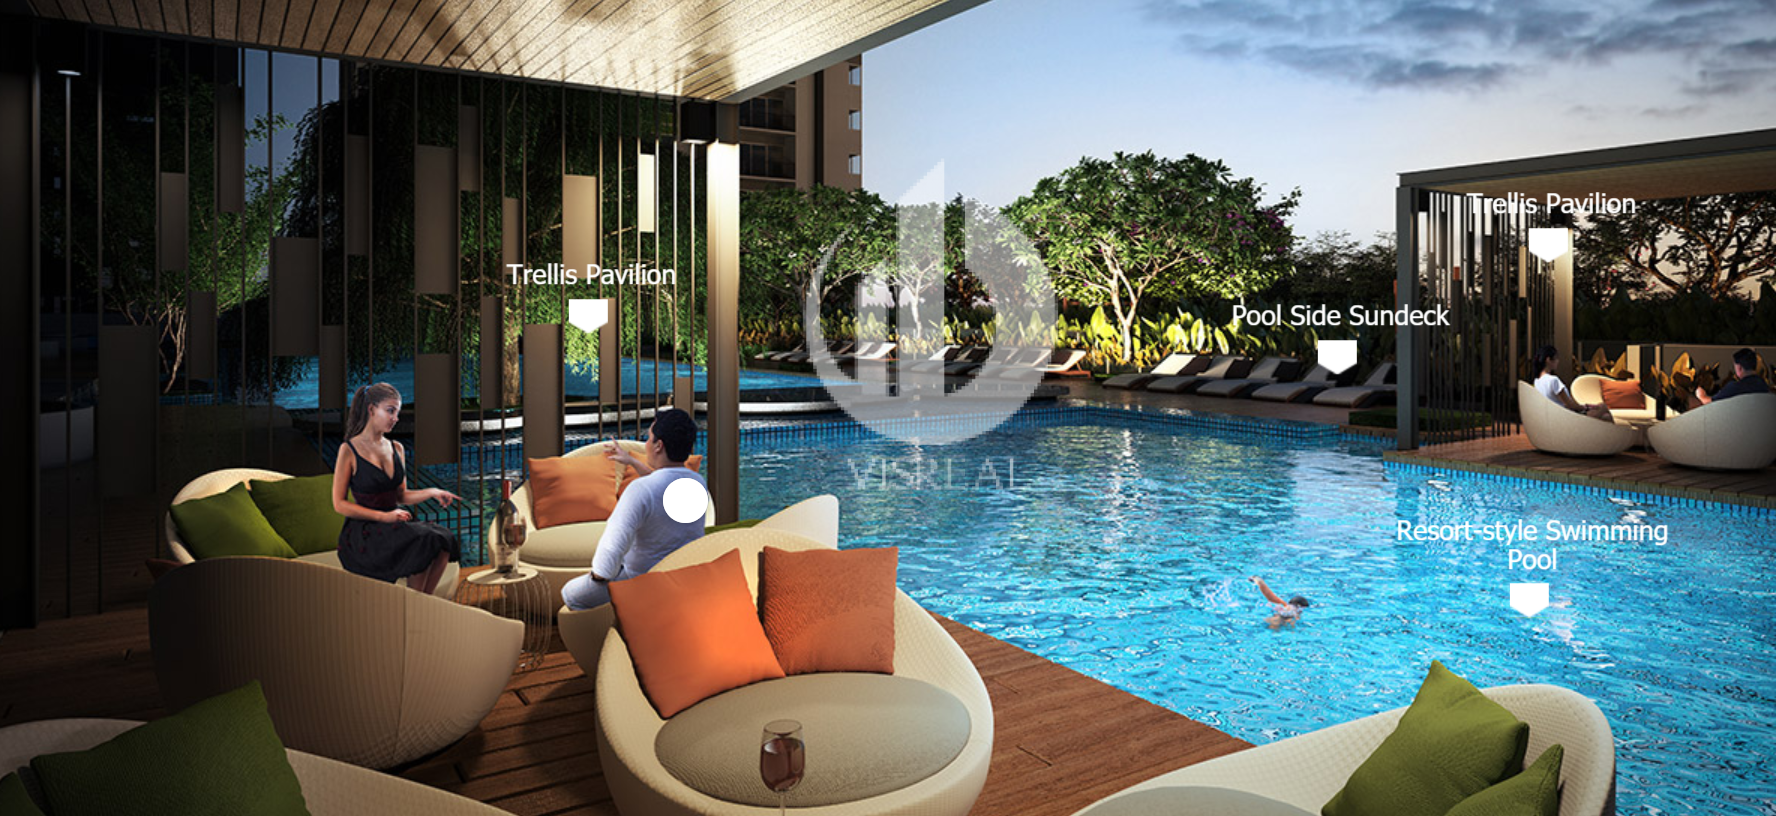 Enjoy an intimate night by the poolside with your loved one at Trellis Pavillion in Vista Verde Apartment